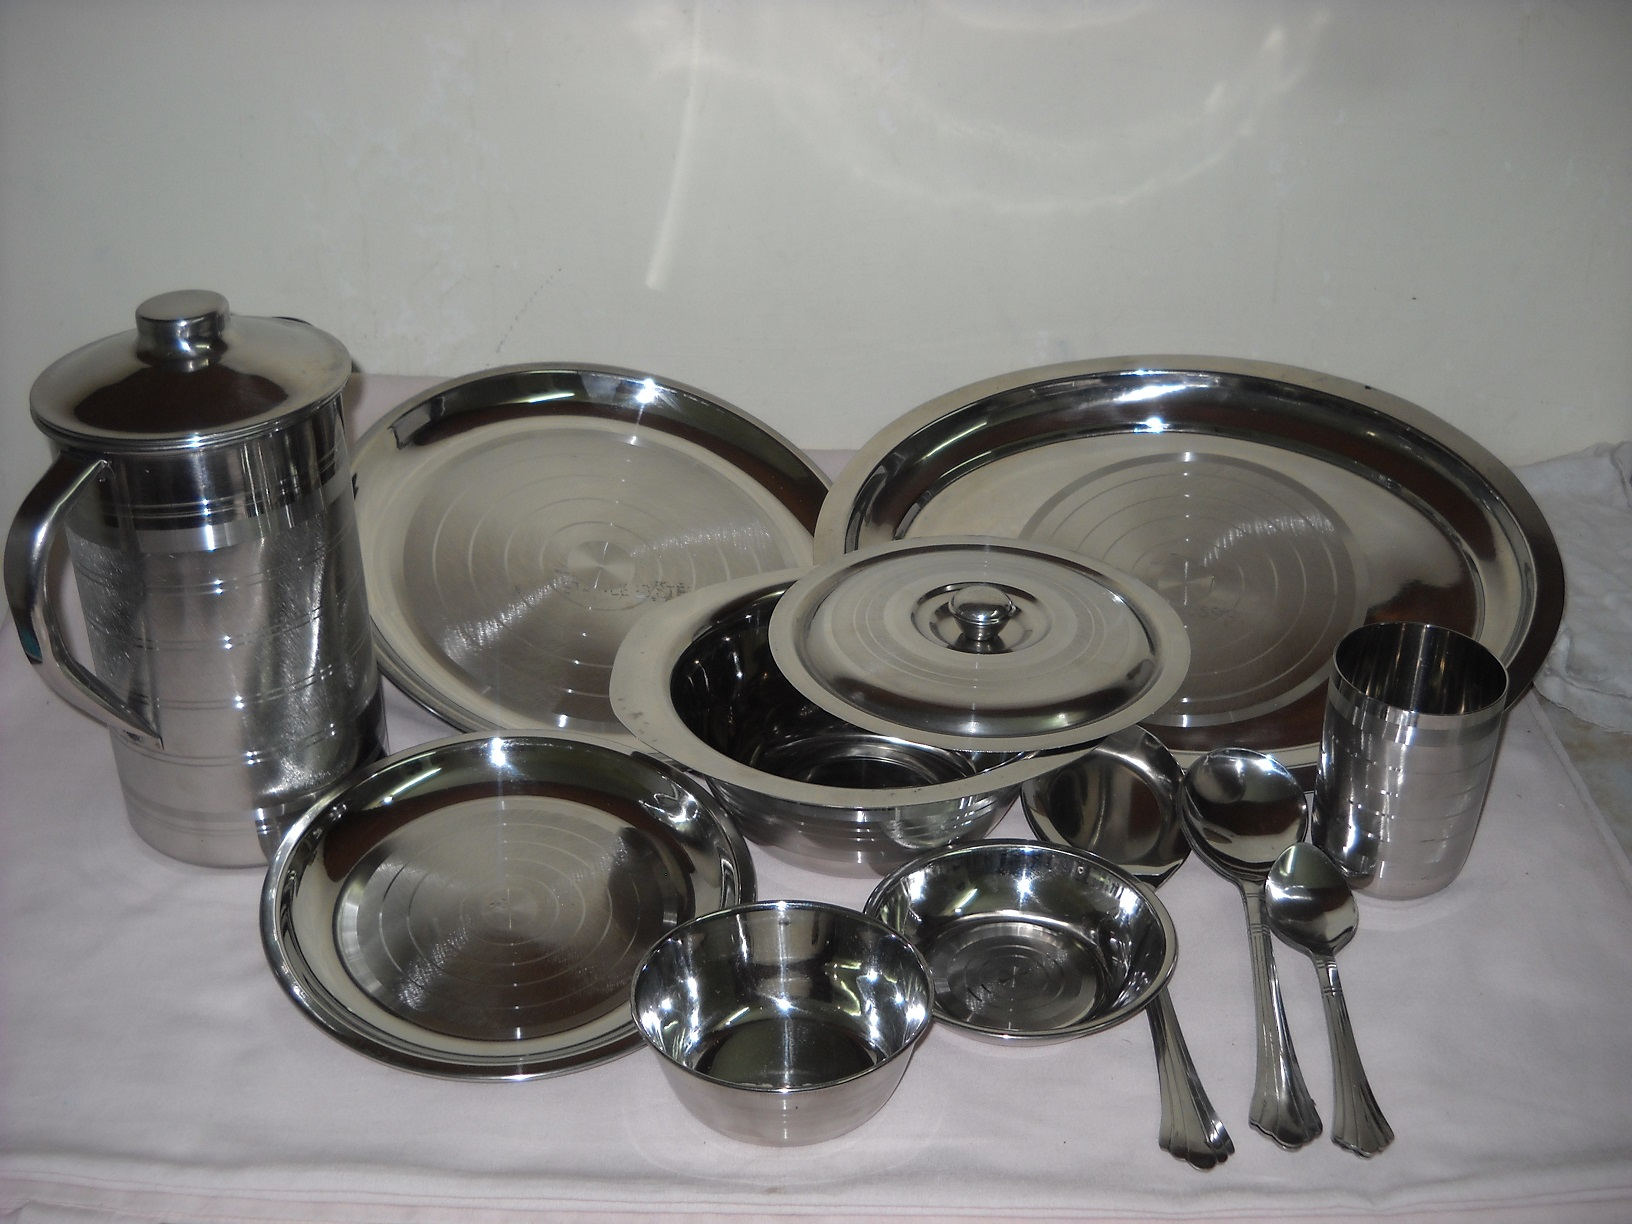 Stainless Steel Items